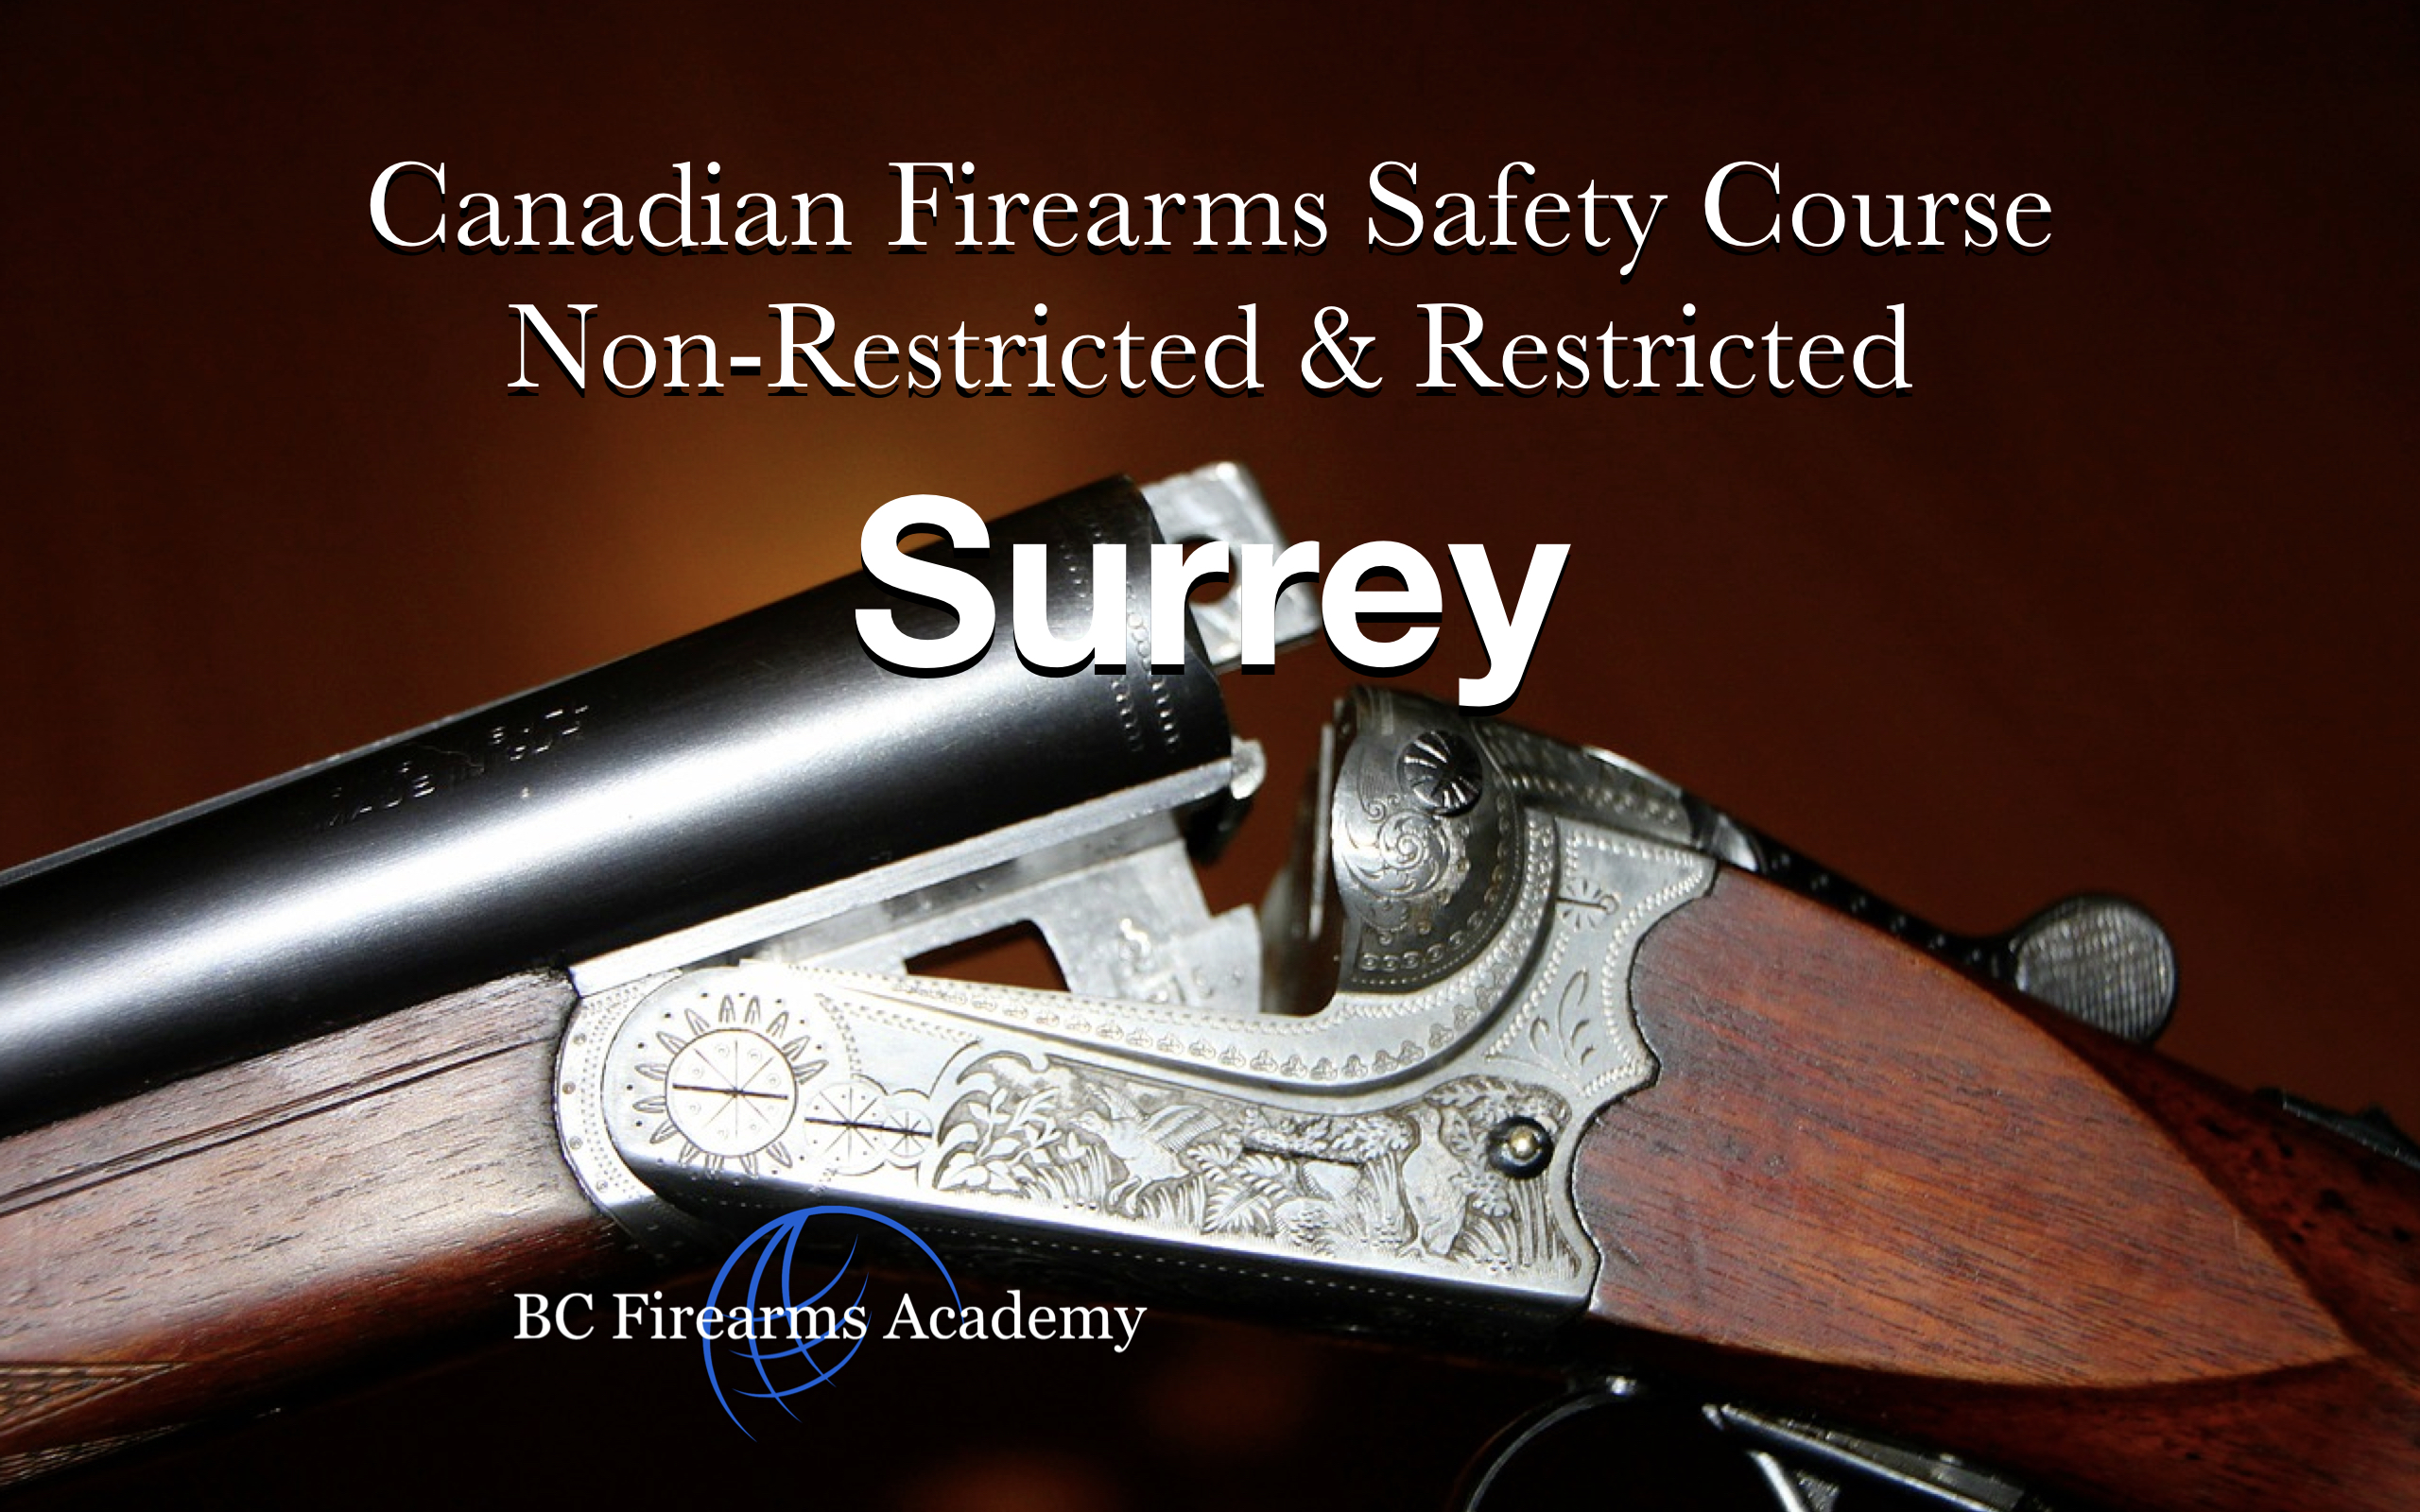 COMBINED CFSC/CRFSC (PAL/RPAL) Surrey, Mon, Tues, Wed  Evenings Oct 19-21